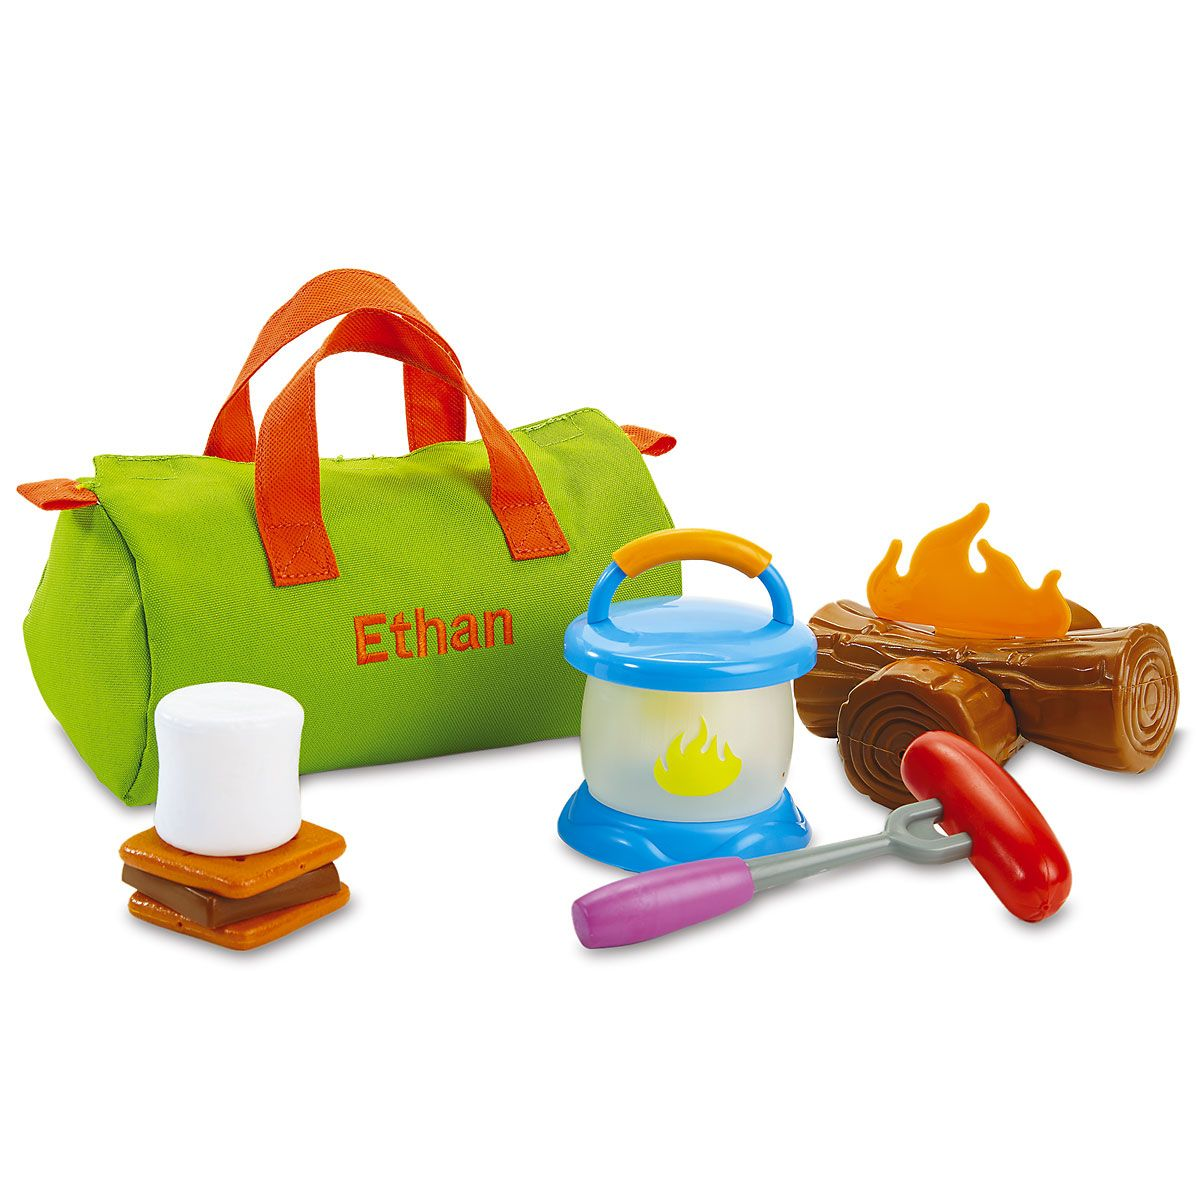 Personalized Camp Out Set